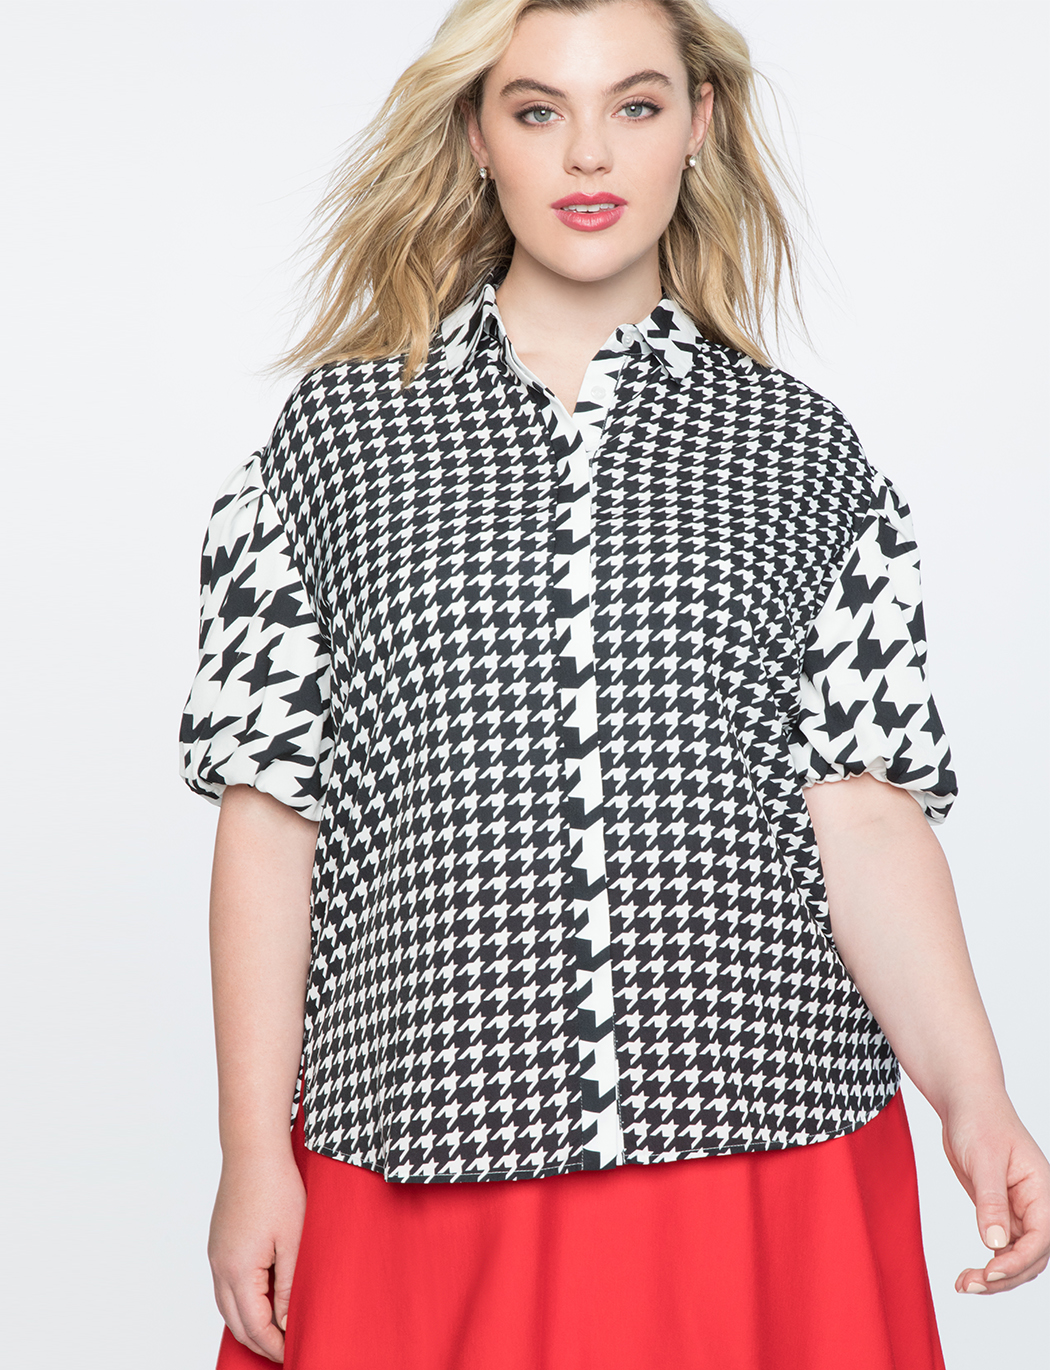 Houndstooth Puff Sleeve Top   $39.90